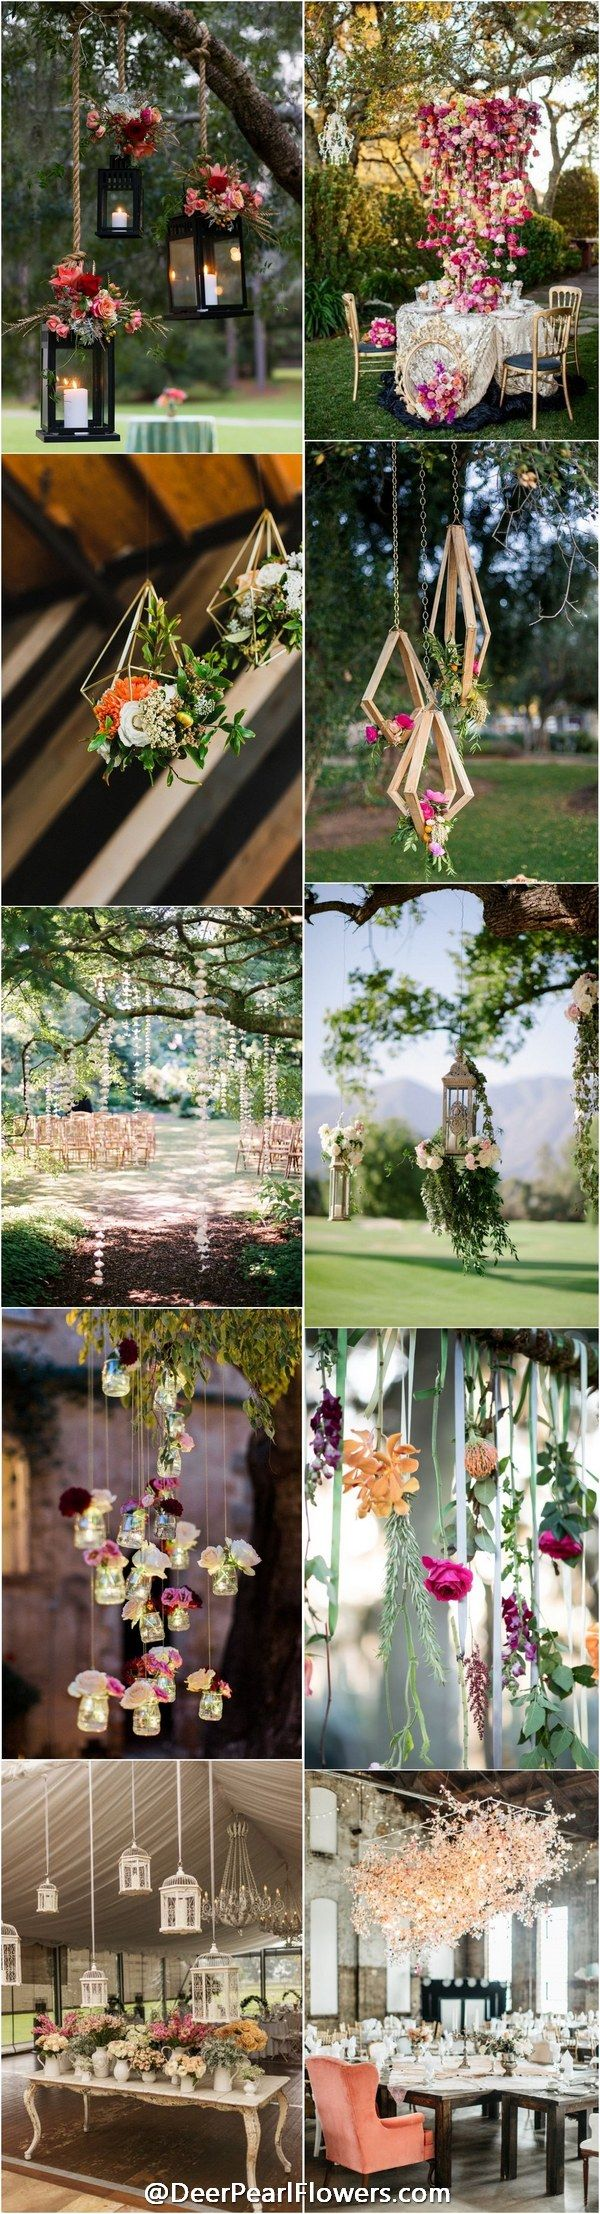 Fall wedding decoration ideas reception  Trends We LOVE  Hanging Wedding Decor Ideas  Unique weddings